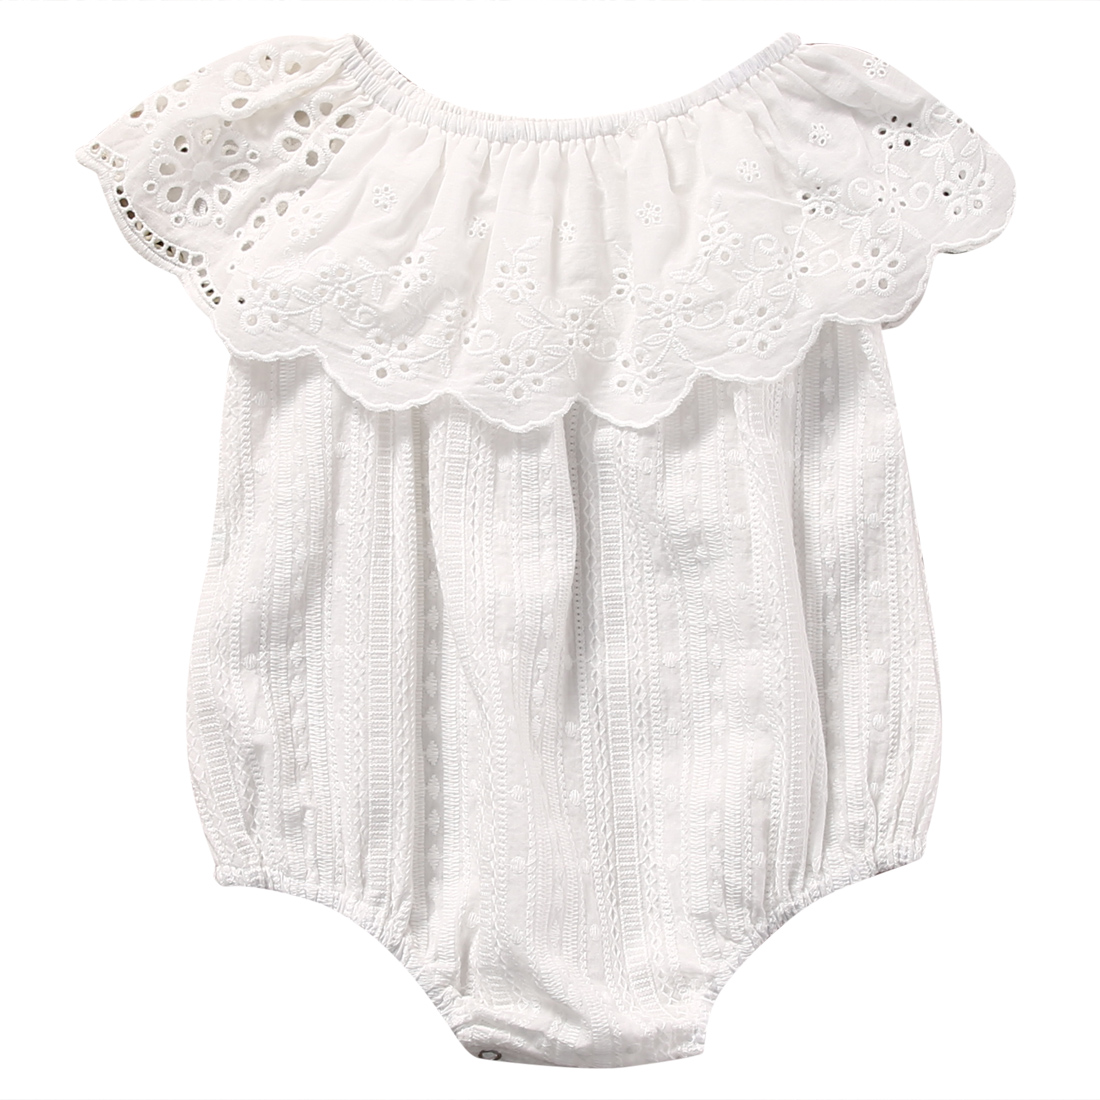 2017 Summer Newborn Baby Girl White Lace Romper Jumpsuit Floral Infant Clothes Outfit Sunsuit summer newborn infant baby girl romper sleeveles cotton floral romper jumpsuit outfit playsuit clothes